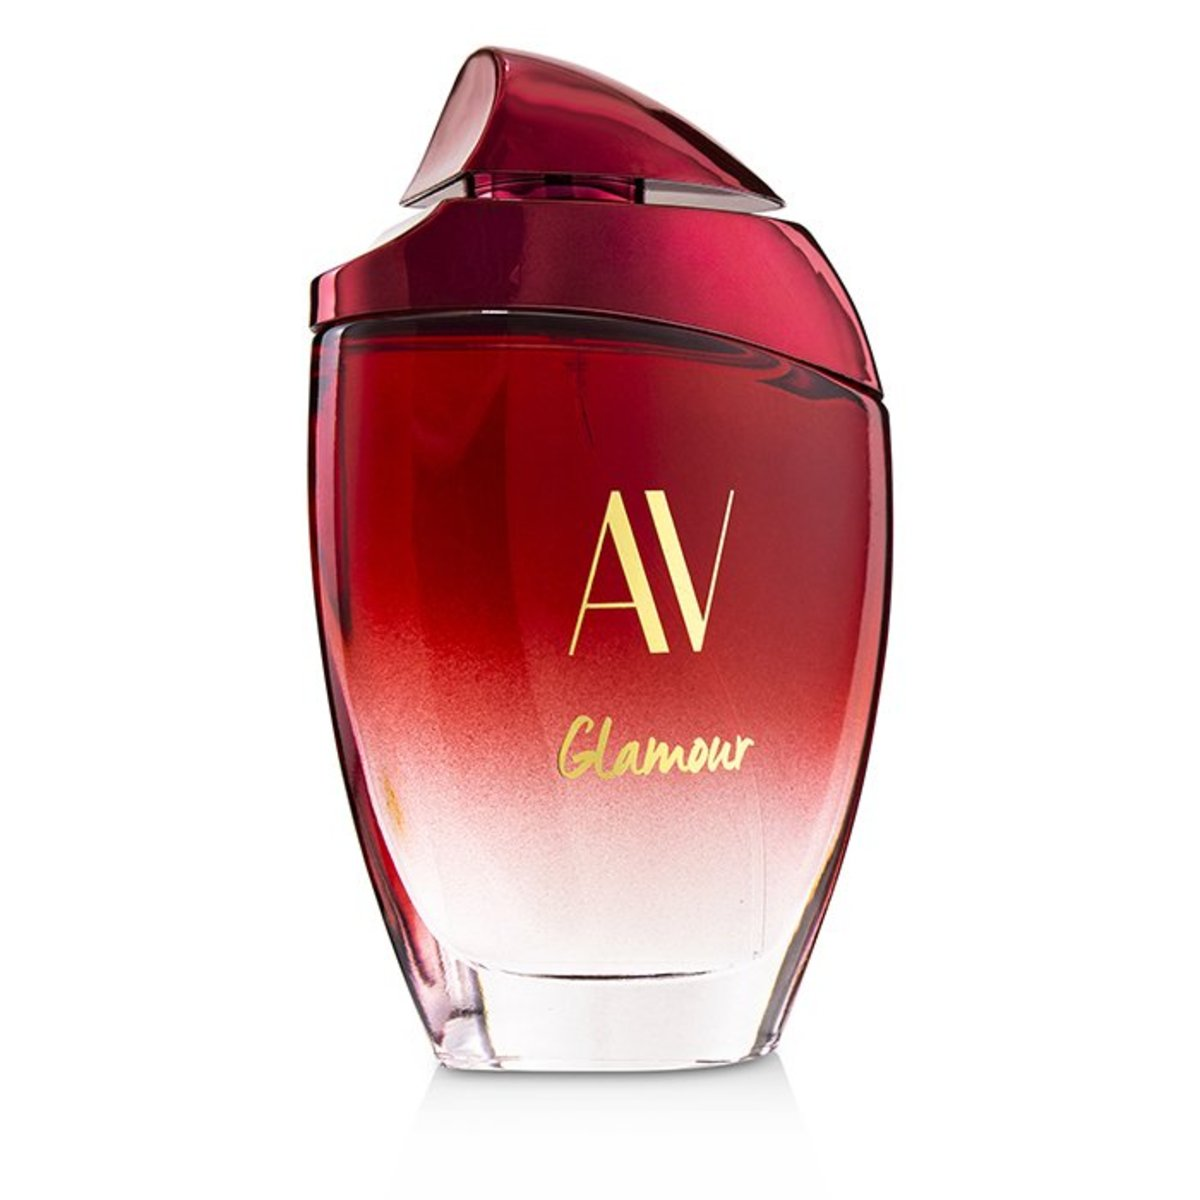 AV Glamour Enchanting Eau De Parfum Spray [Parallel Import Product]